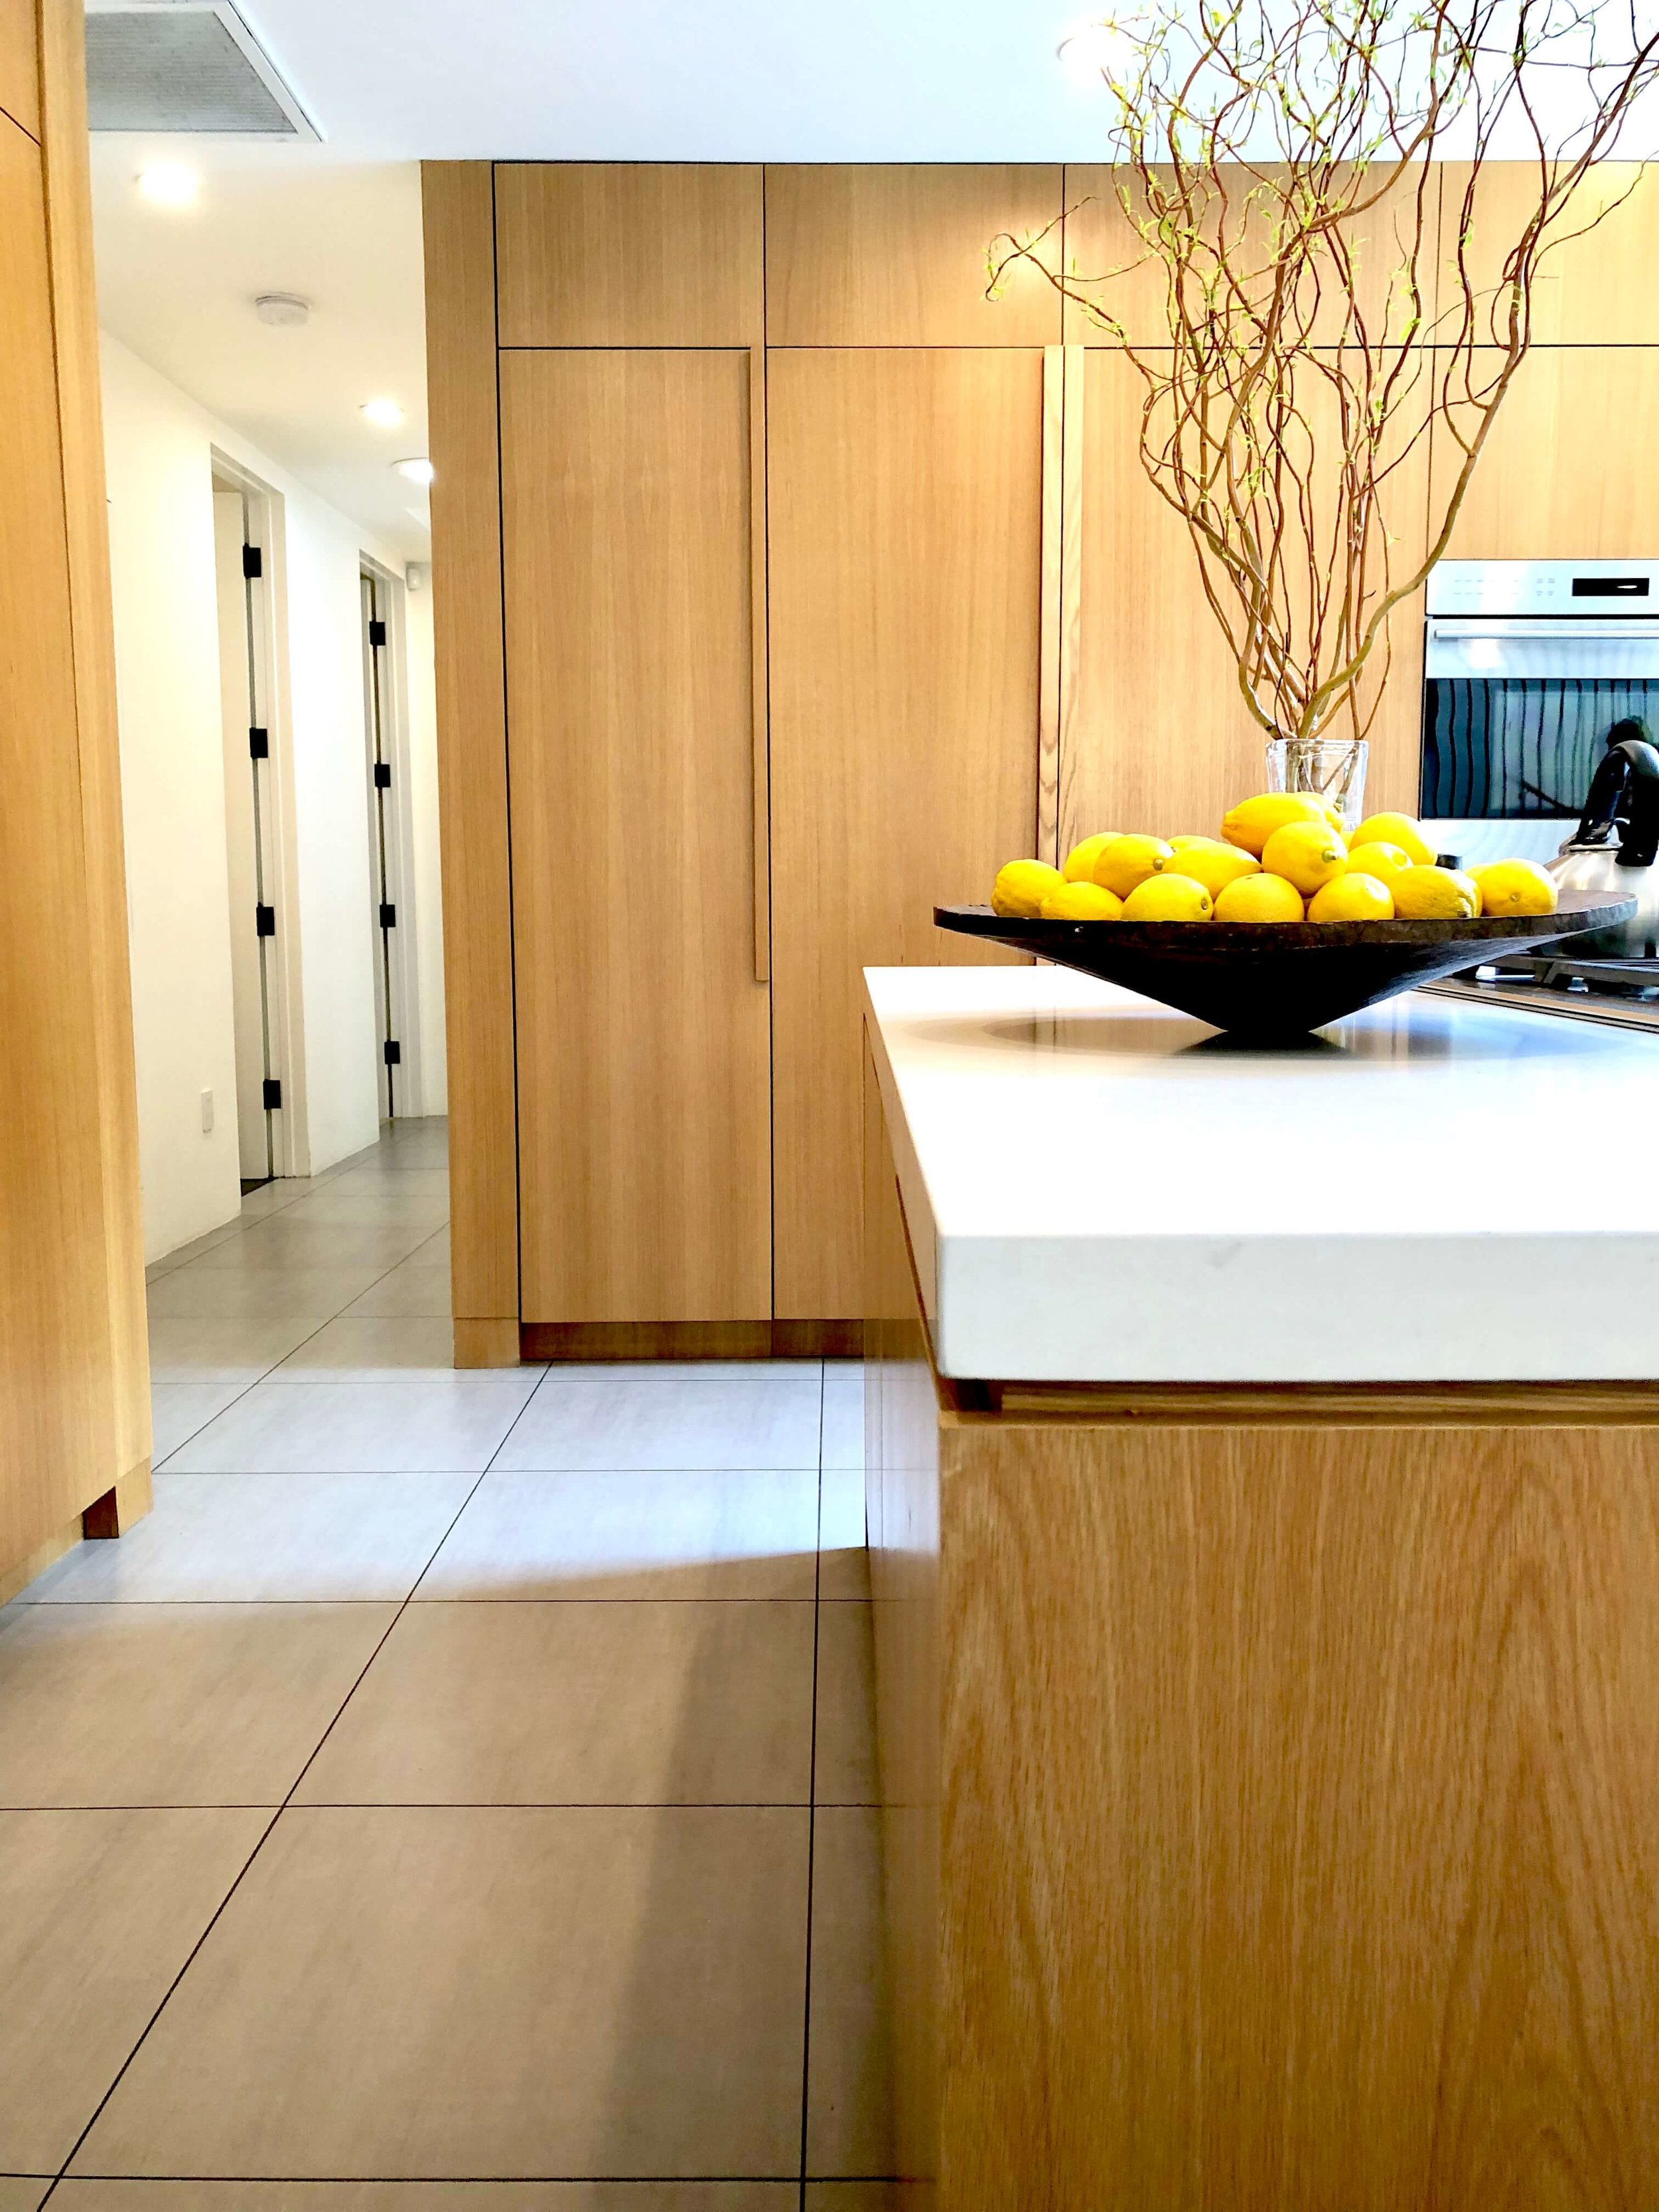 Thick kitchen countertops | Assembledge Architects | See more about this  contemporary home here.  #kitchendesign #kitchencountertops